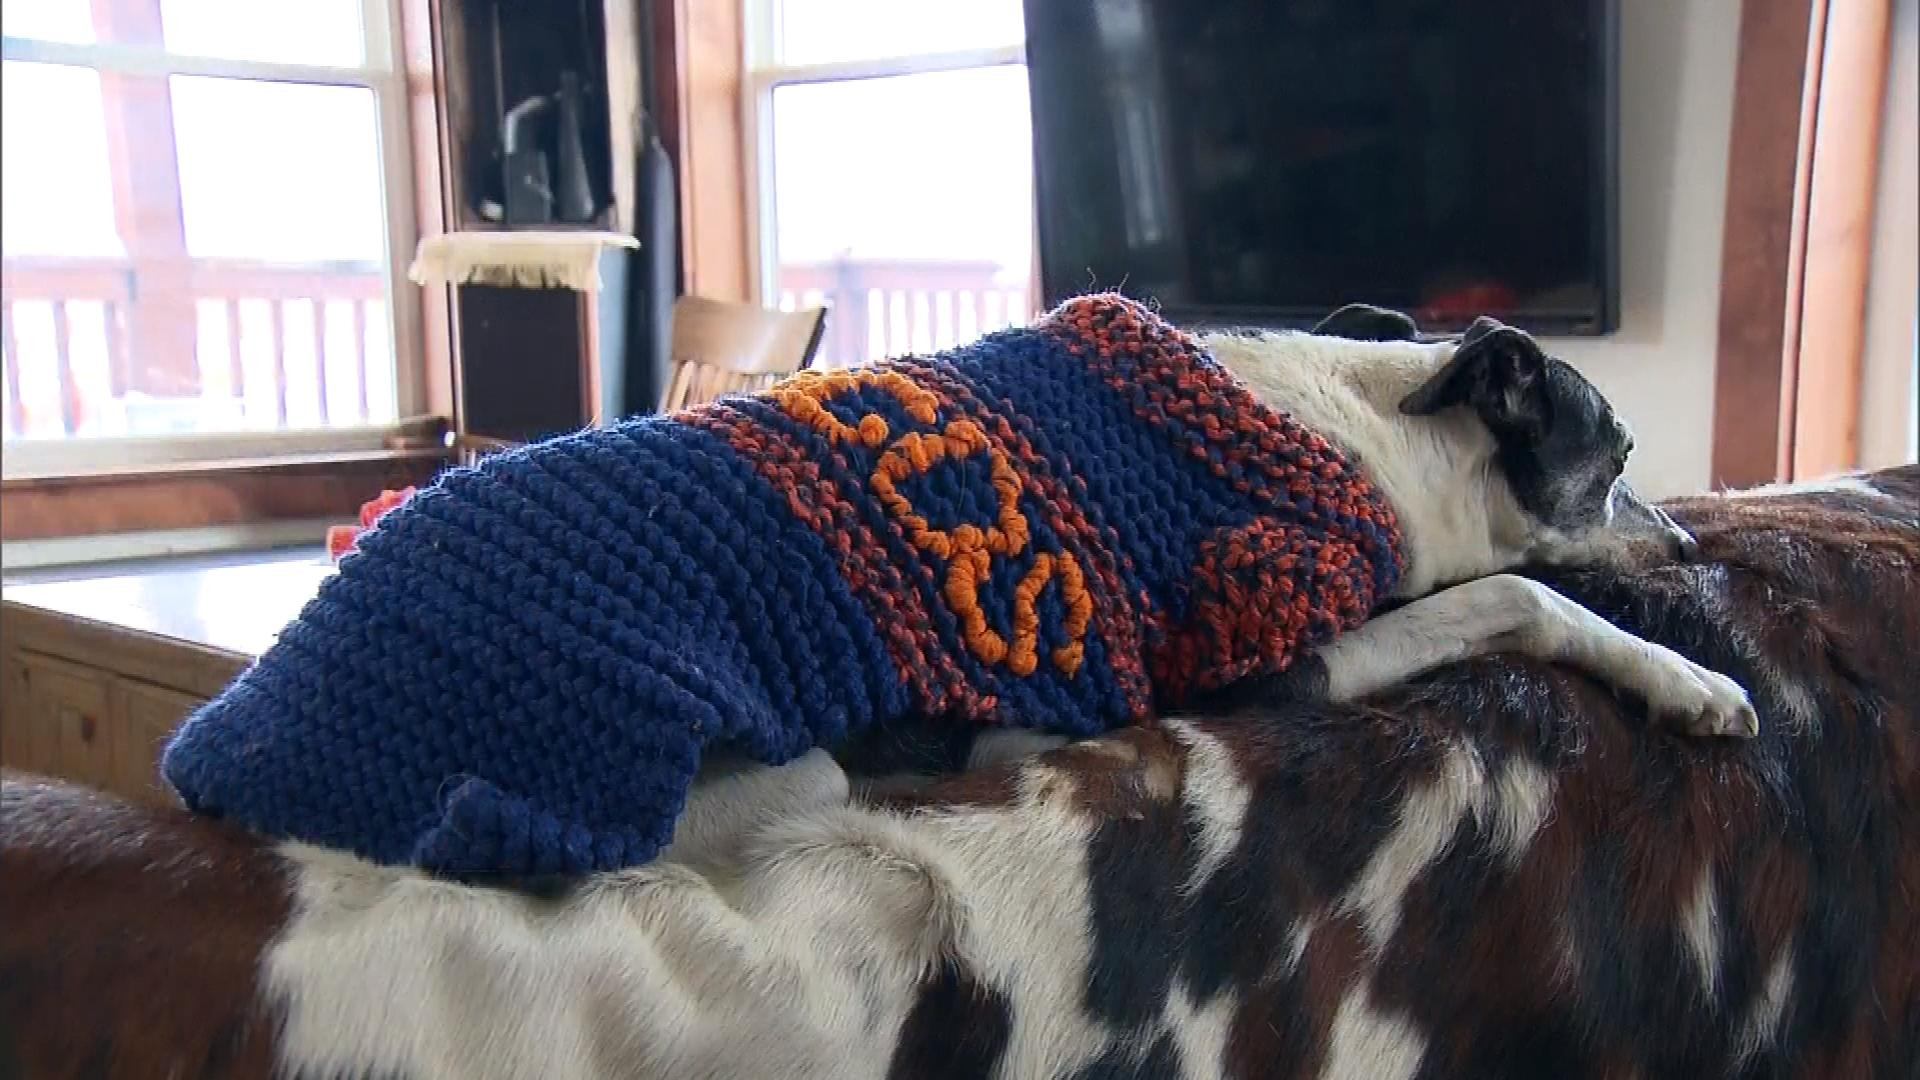 One of the Herbergs' dogs in a Broncos sweater (credit: CBS)